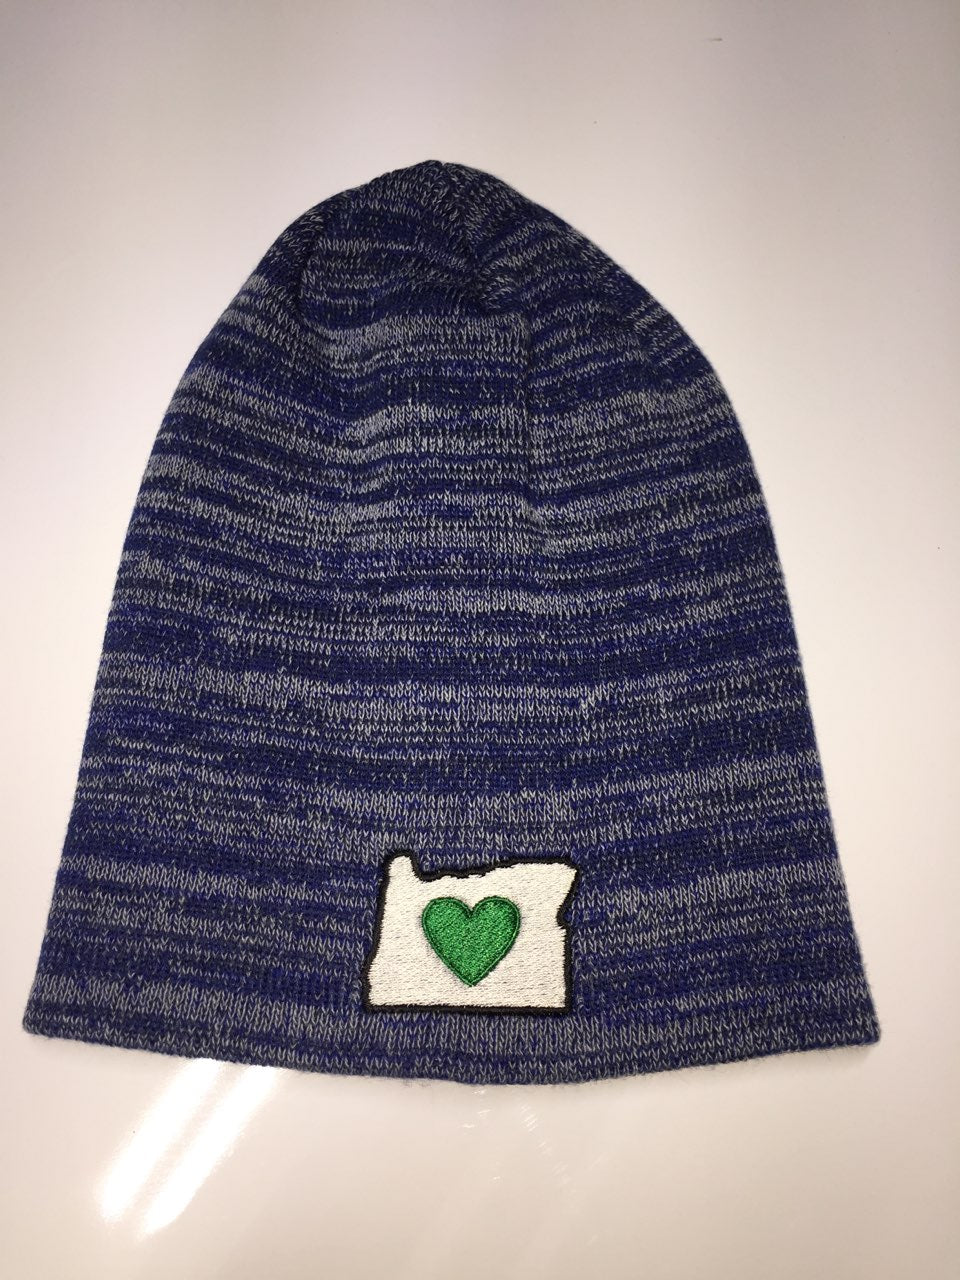 Beanie Cap - Embroidered Heart in Oregon Logo - Heart In Oregon